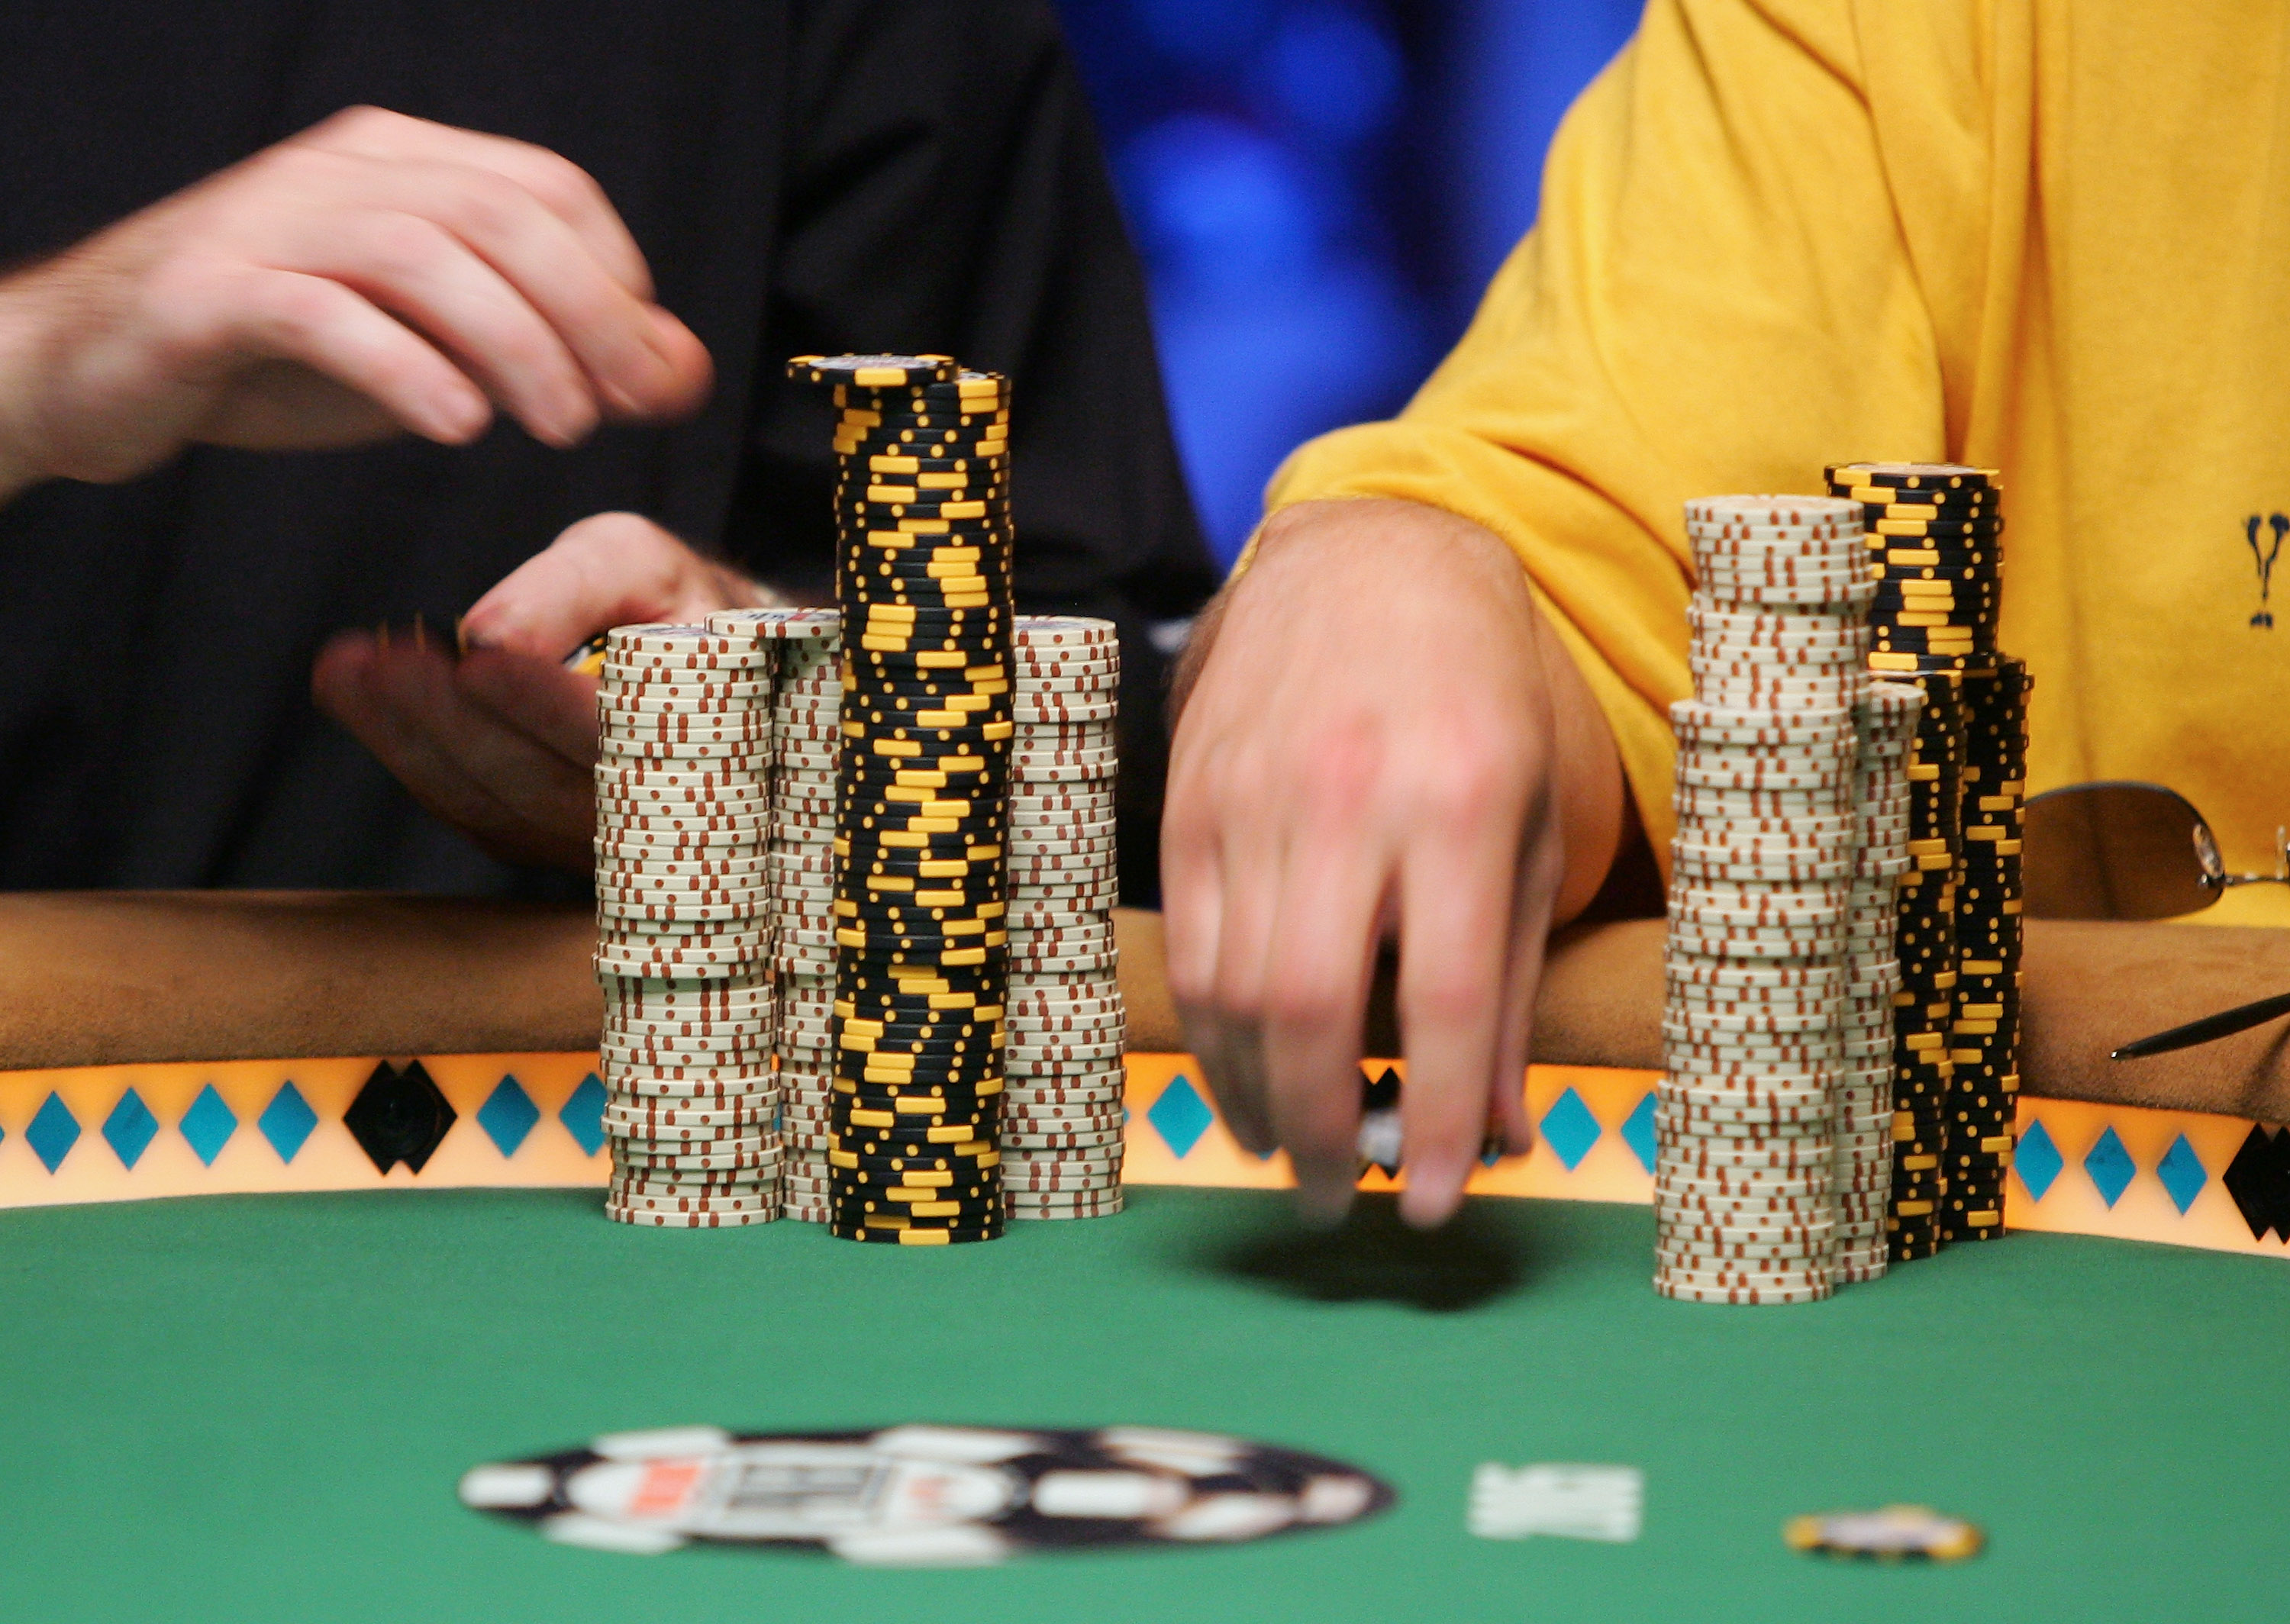 A player reaches for their chips during a game of poker